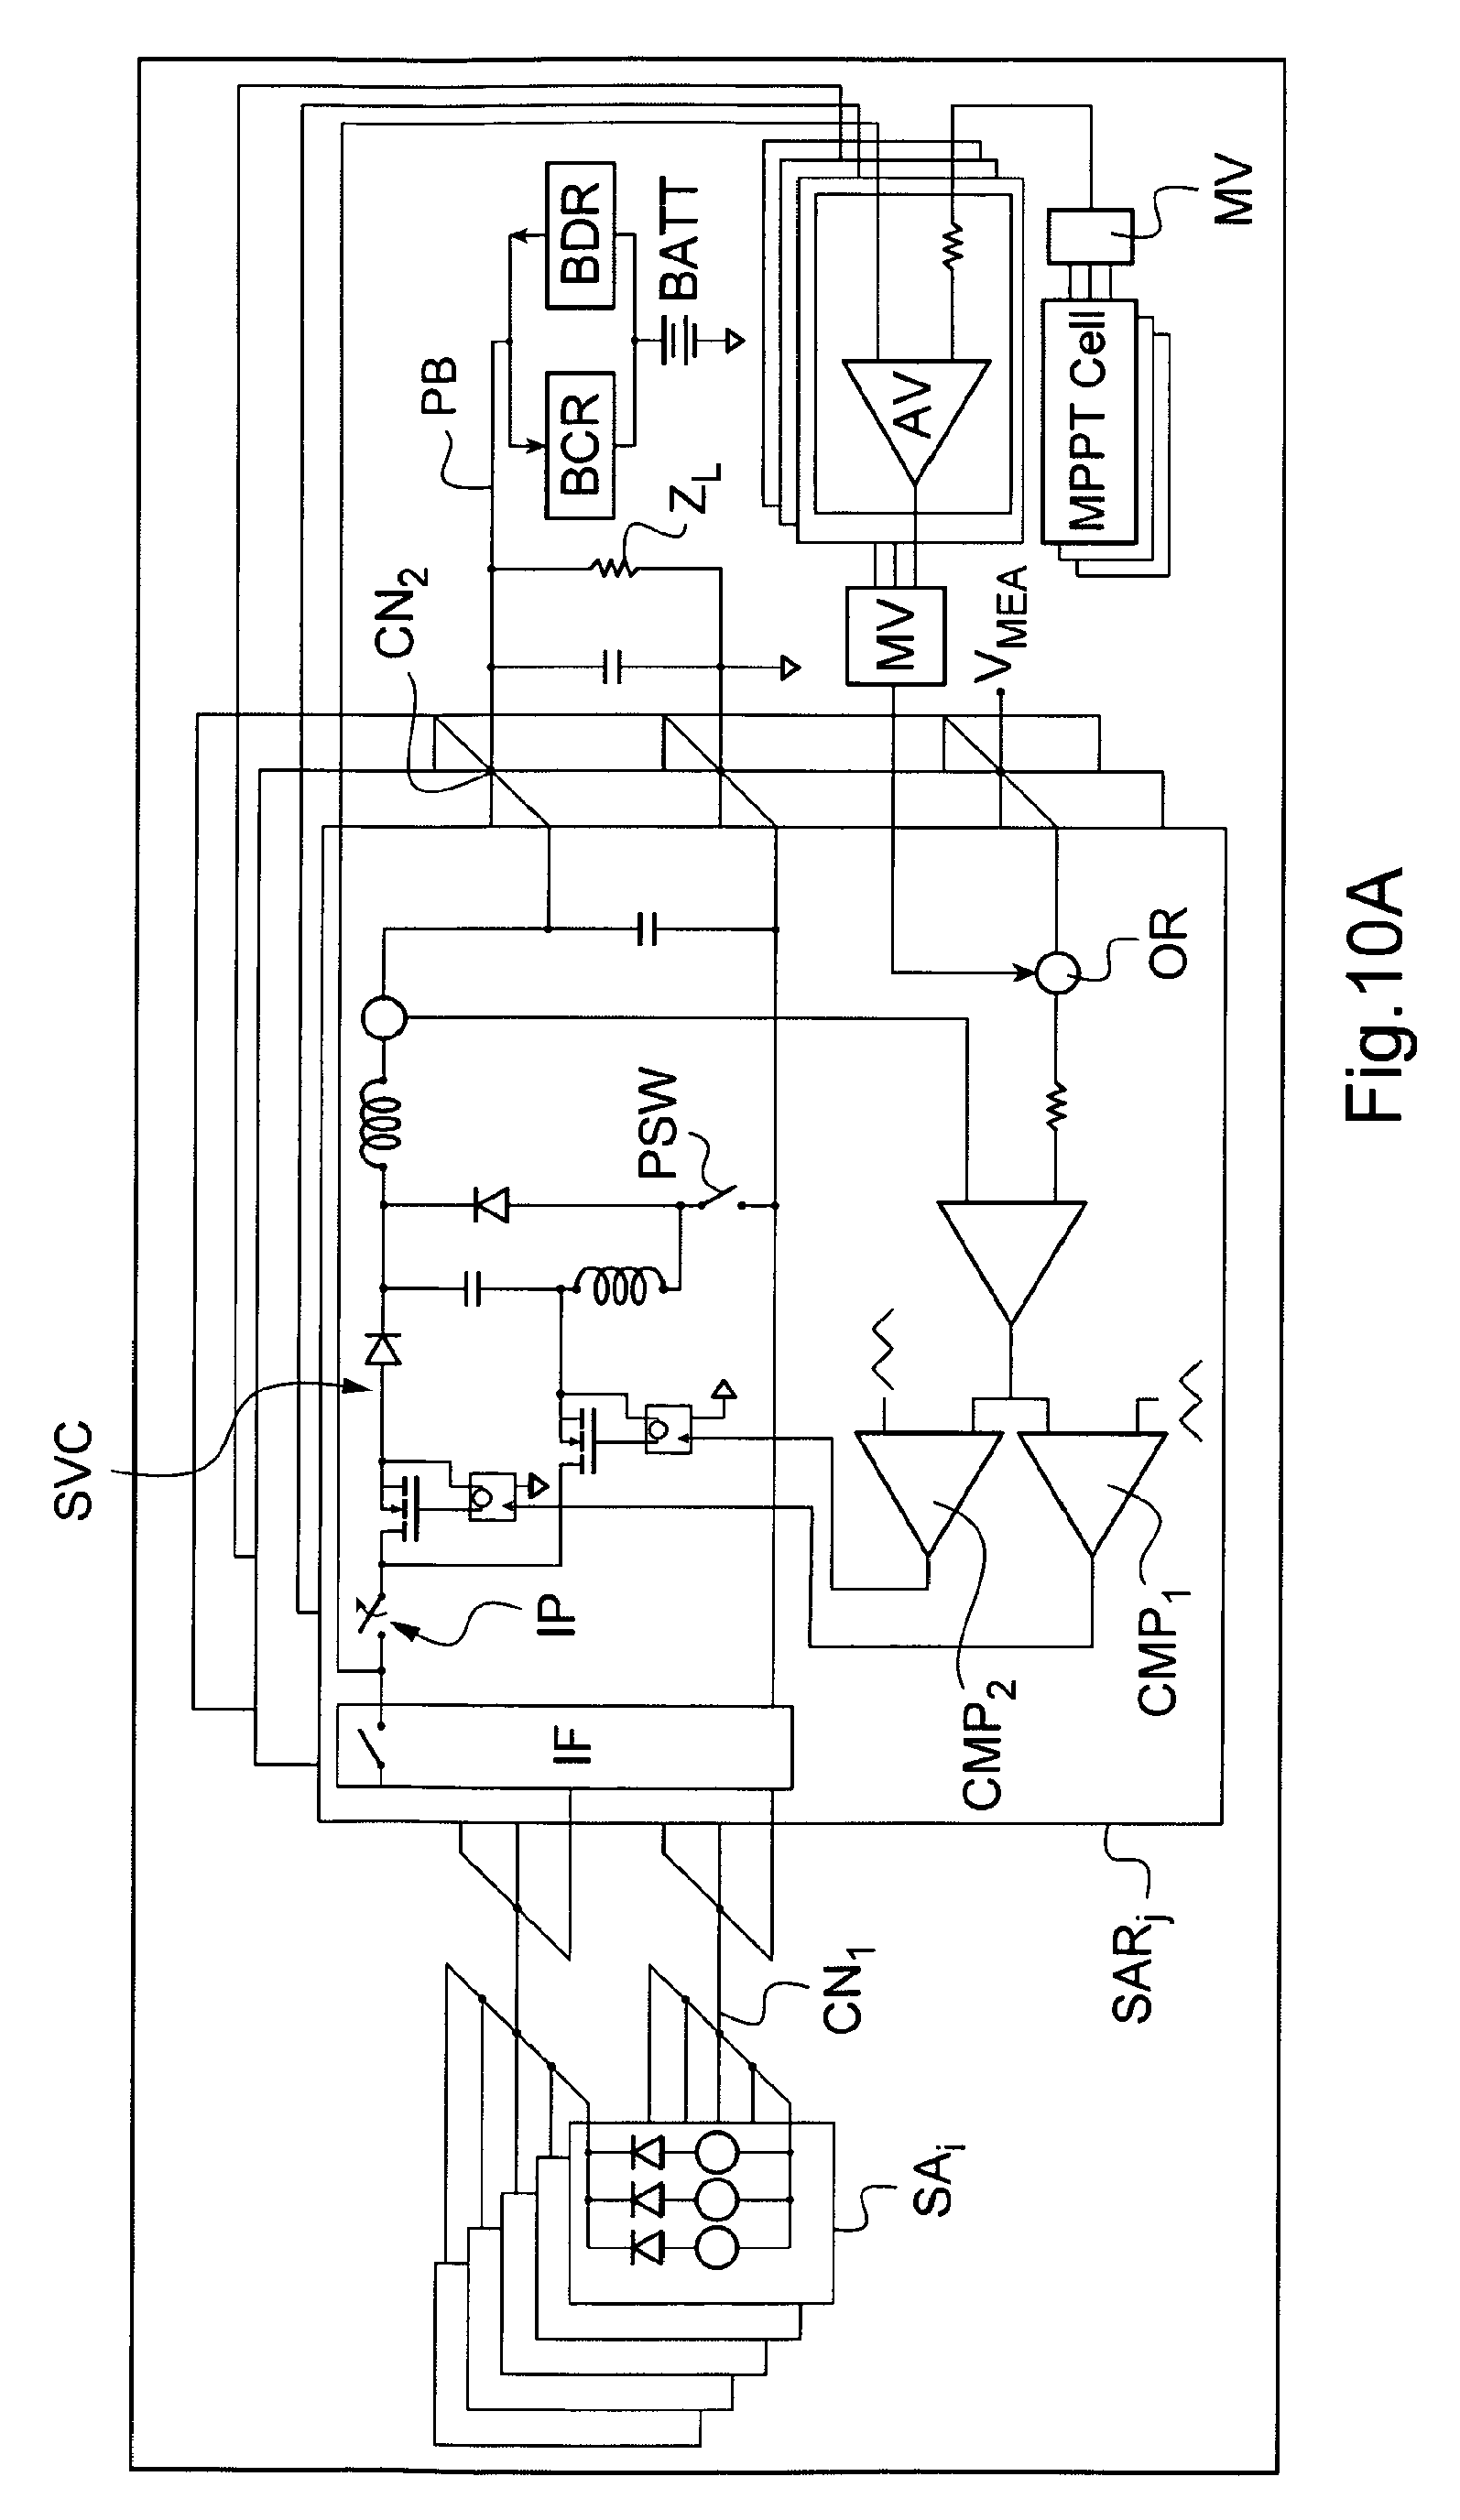 Patent Ep2267572a1 Solar Array Regulator Based On Step Up And Down Mppt Circuit Diagram Drawing